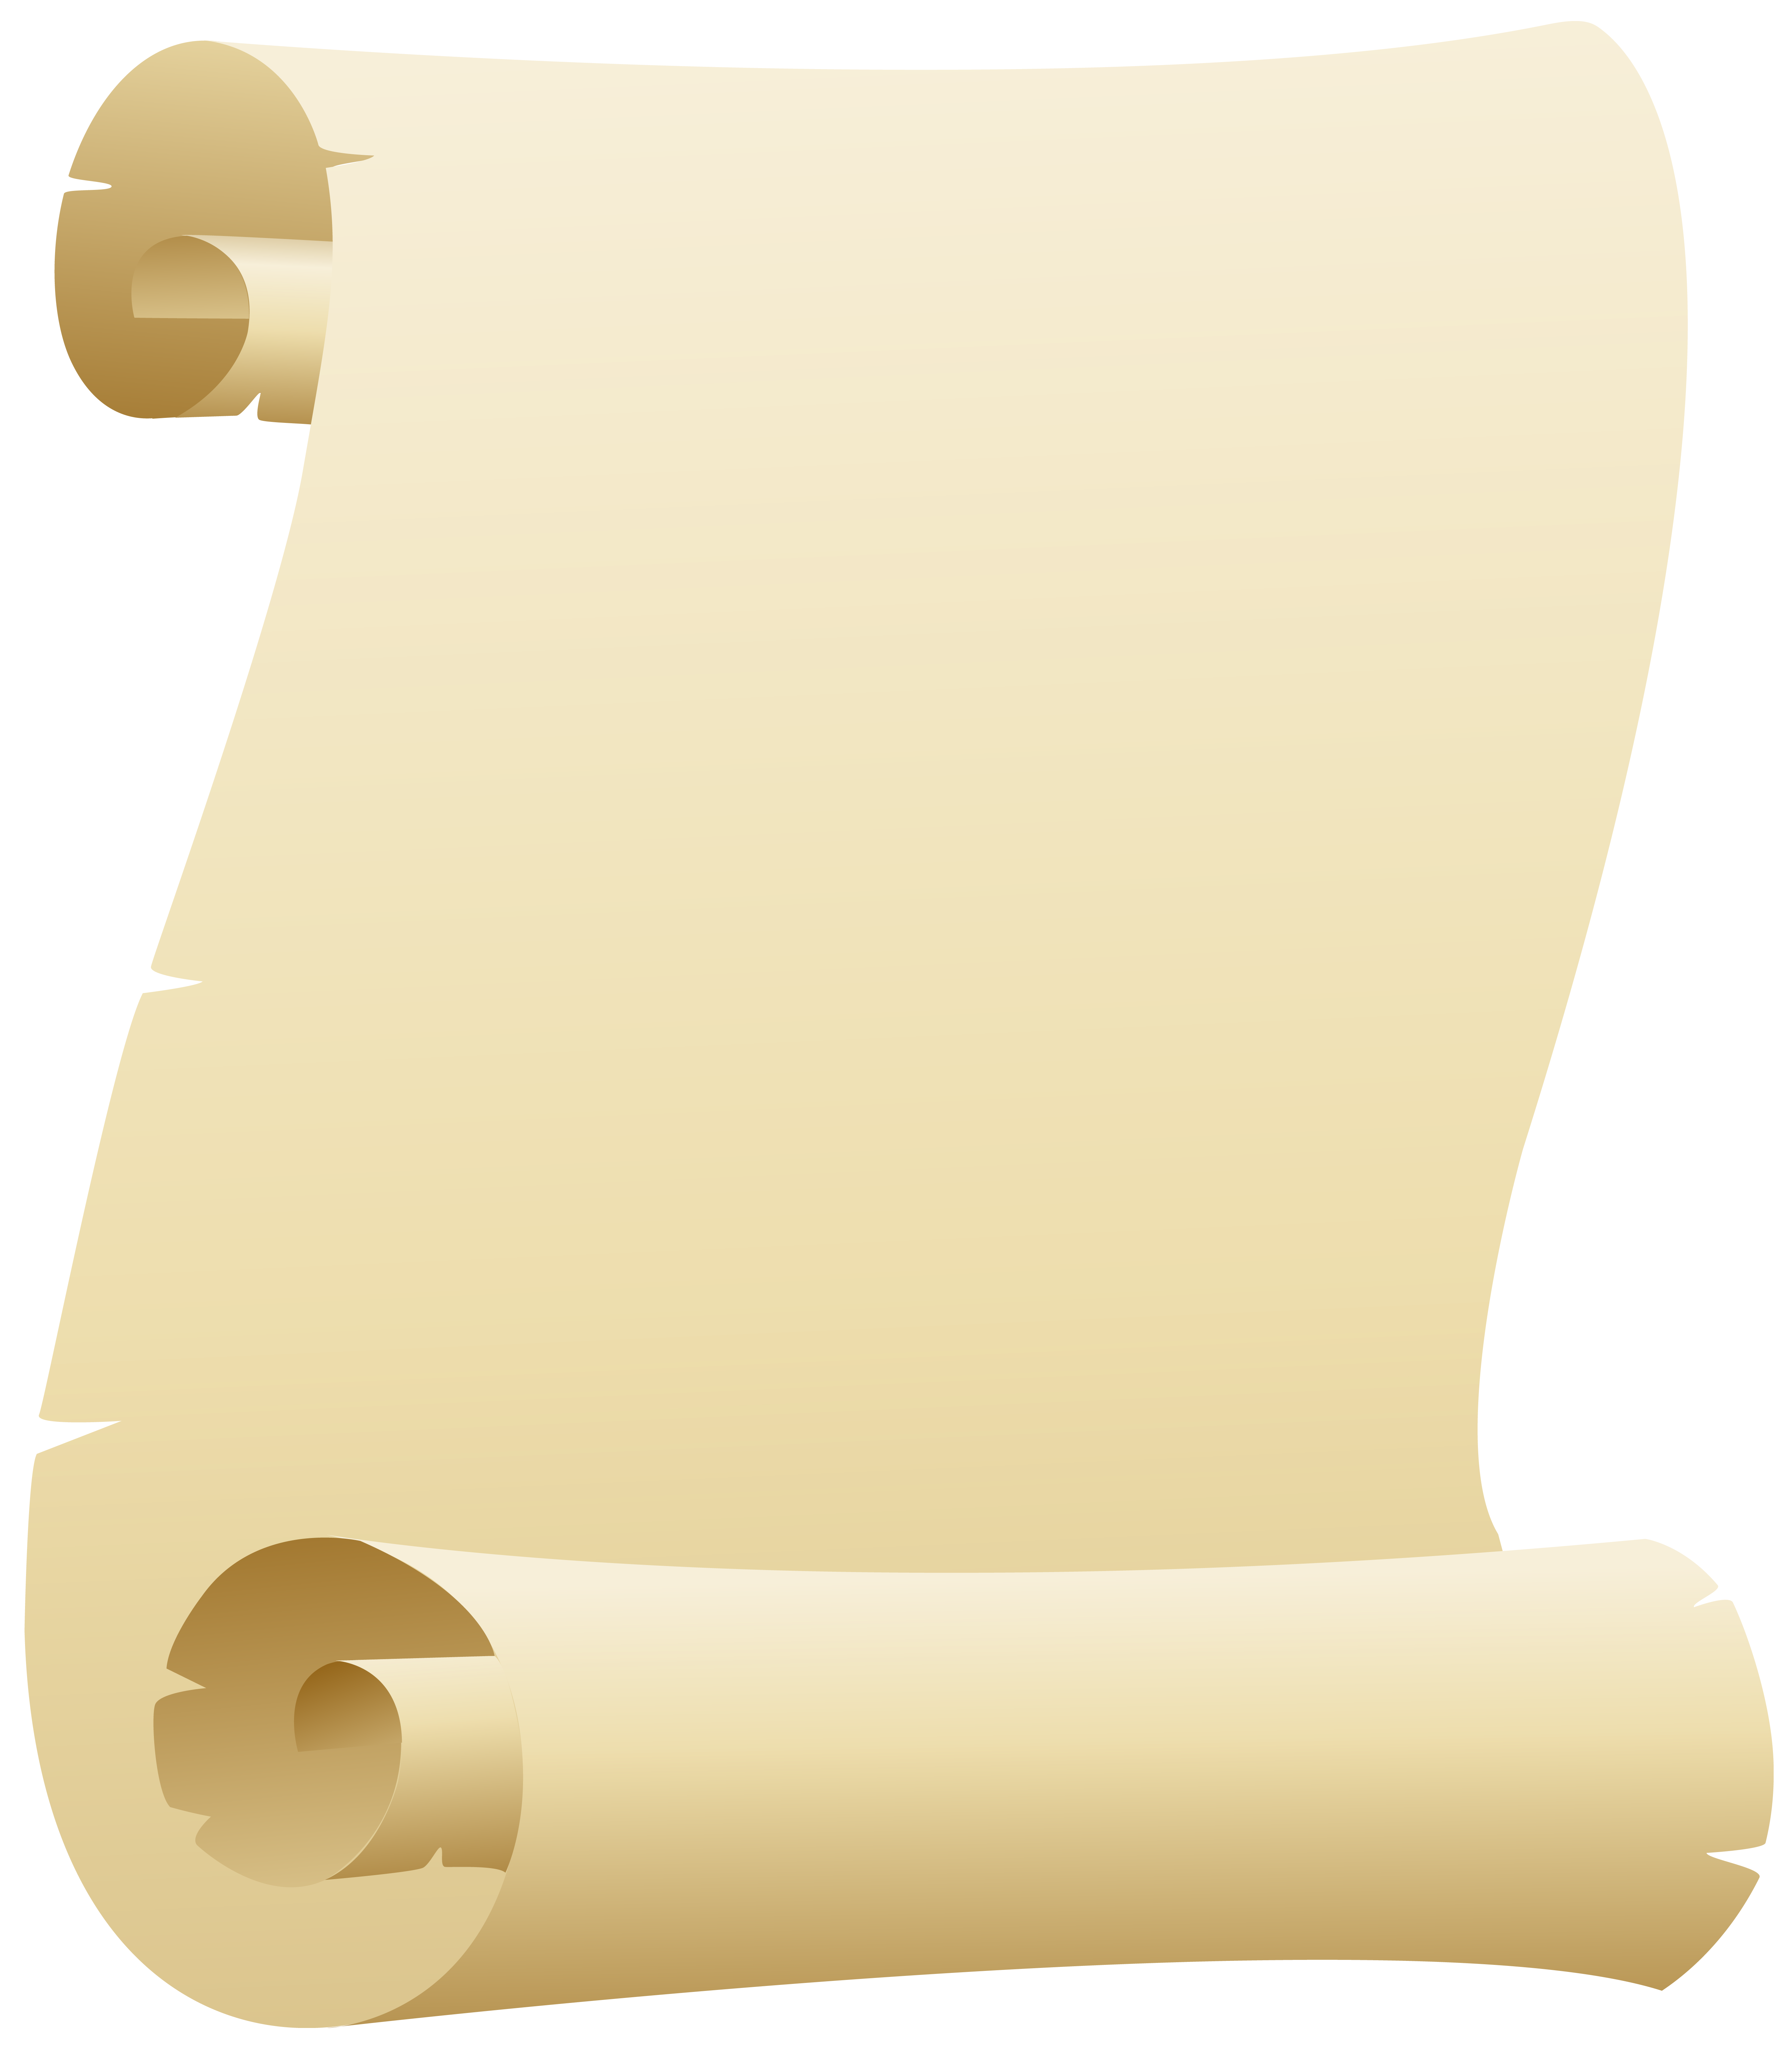 royalty free Scrolls clipart. Scroll png image gallery.